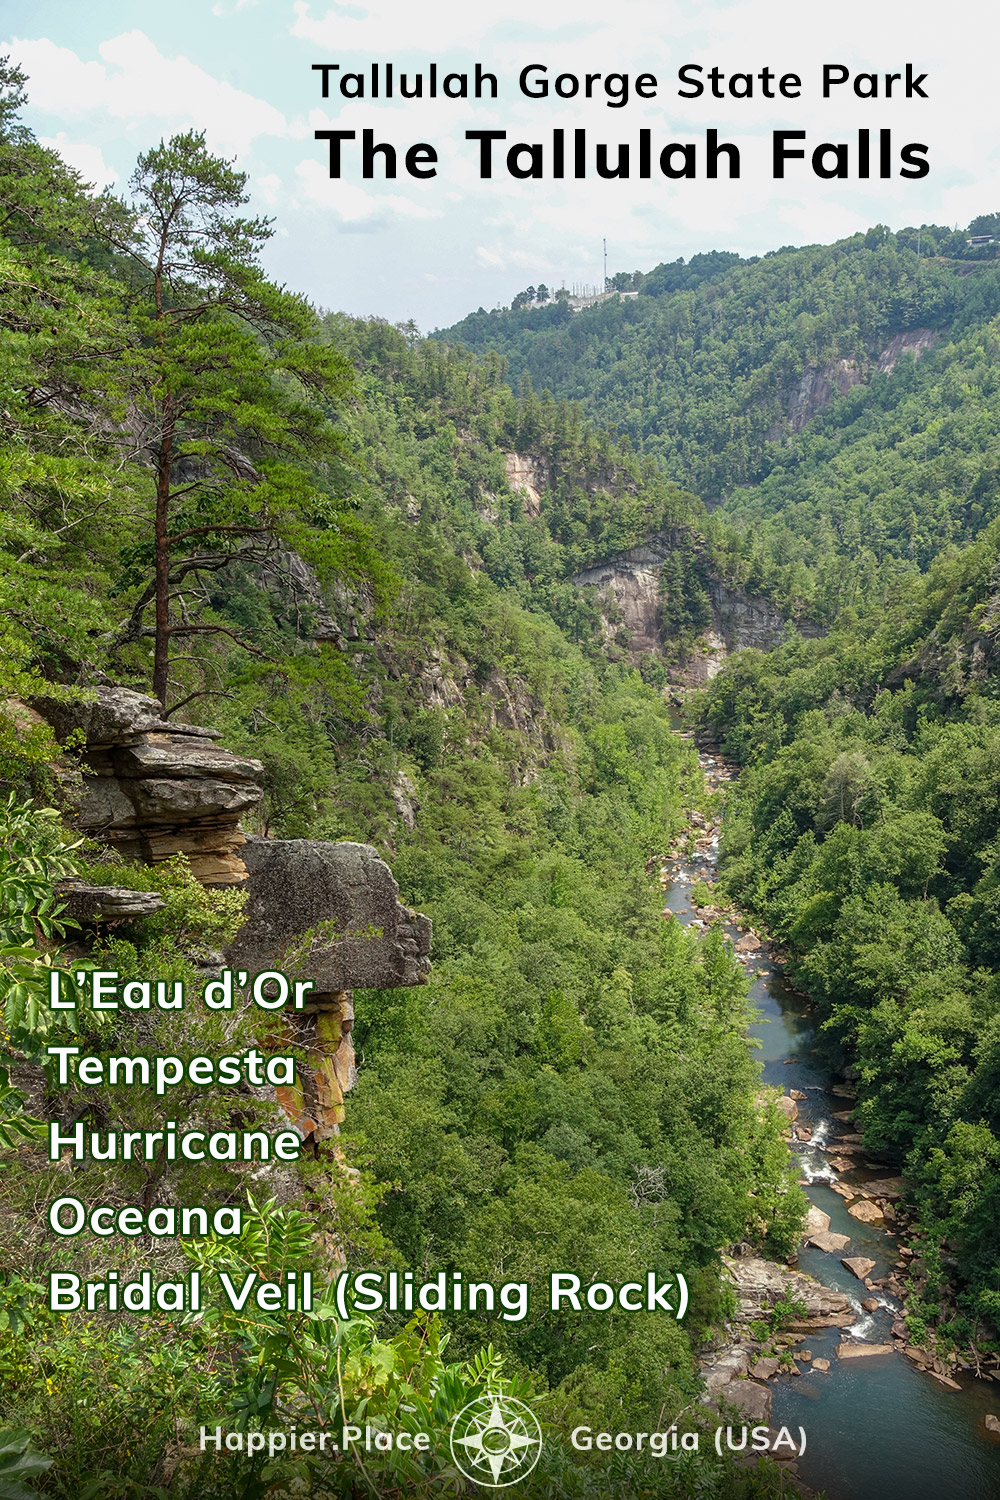 Five waterfalls of the Tallulah Gorge State Park, Georgia, USA, waterfalls, river, canyon, Happier Place